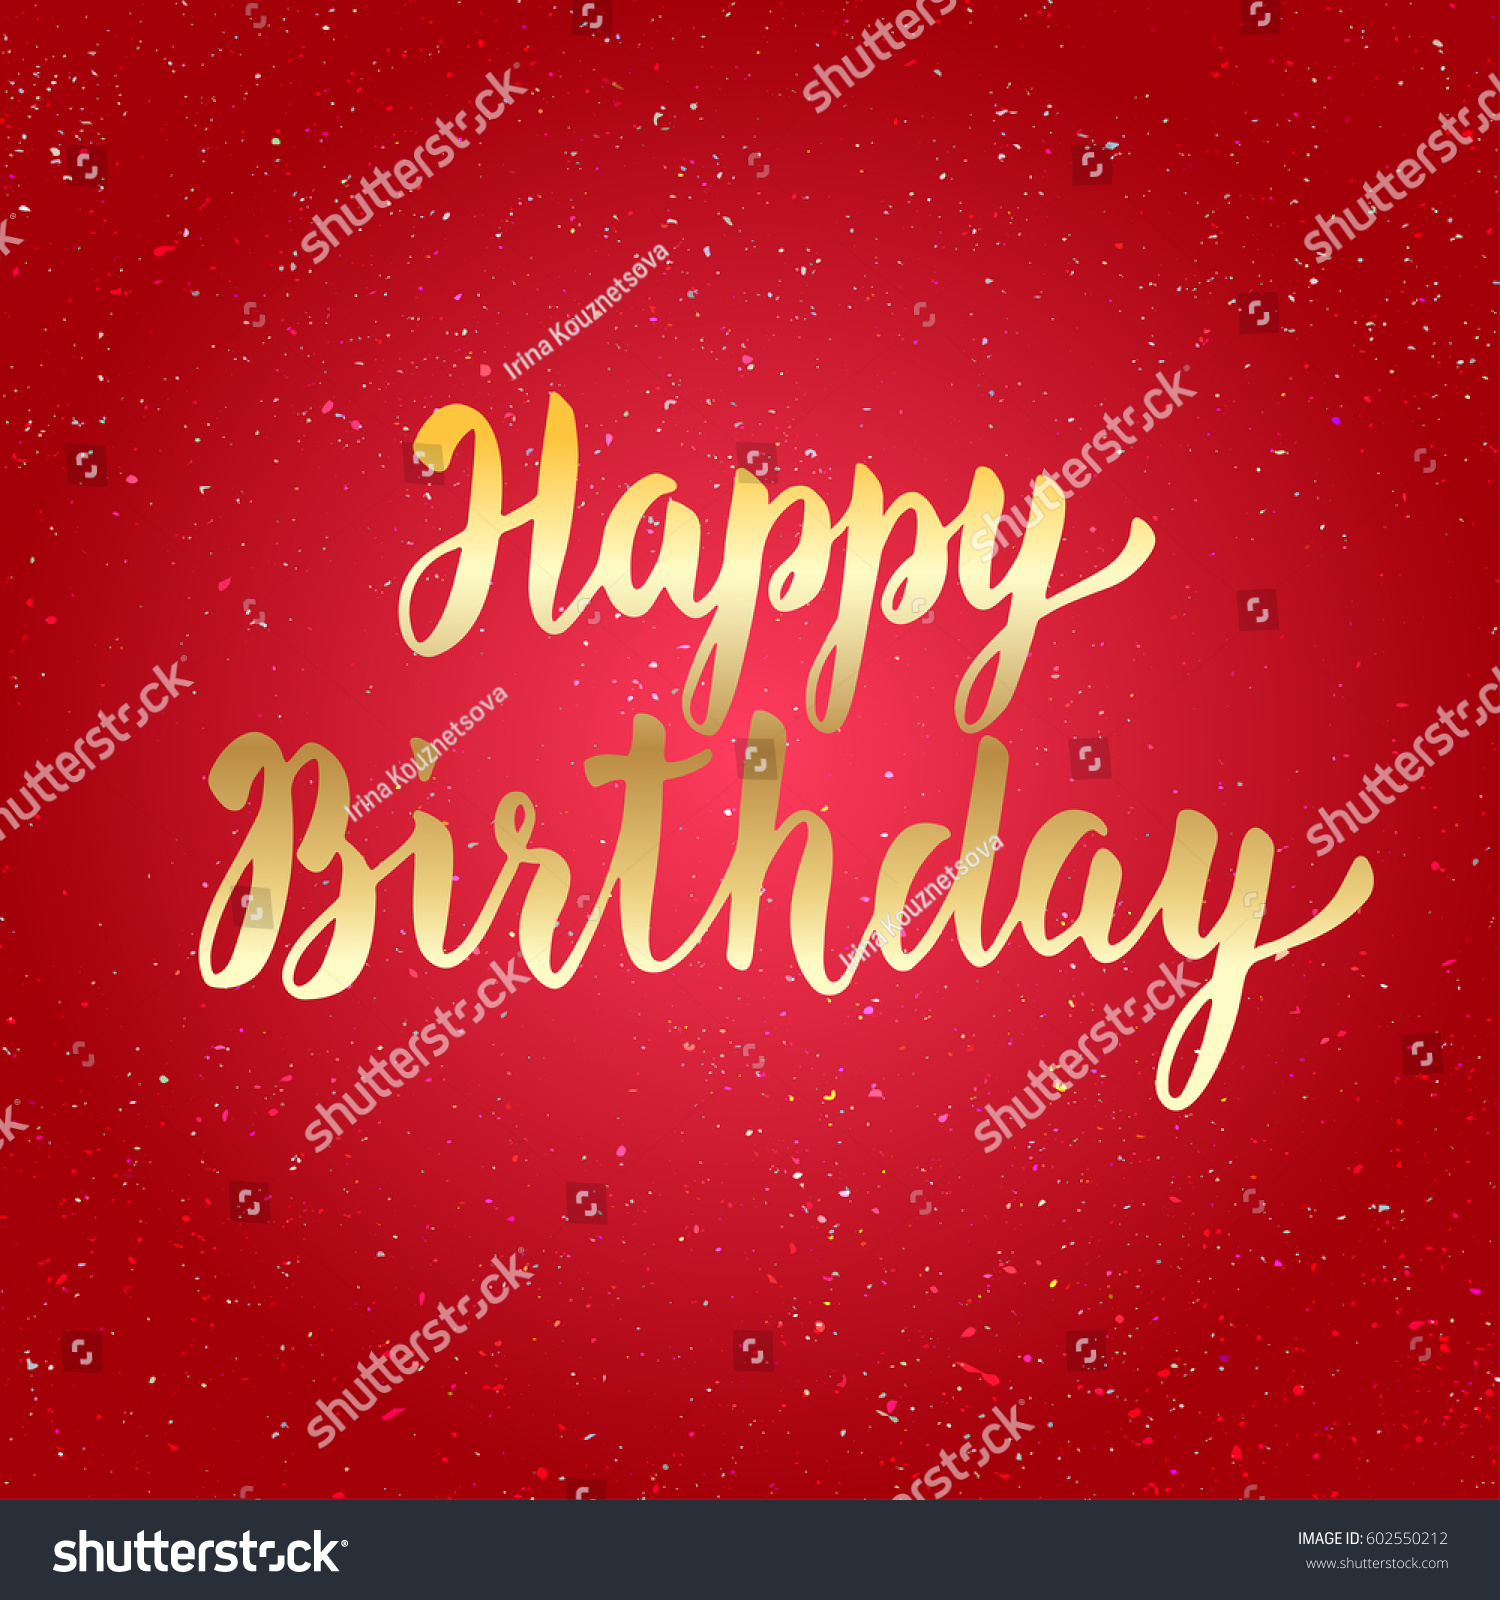 Happy Birthday Greeting Cards Christmas   www.topsimages.com